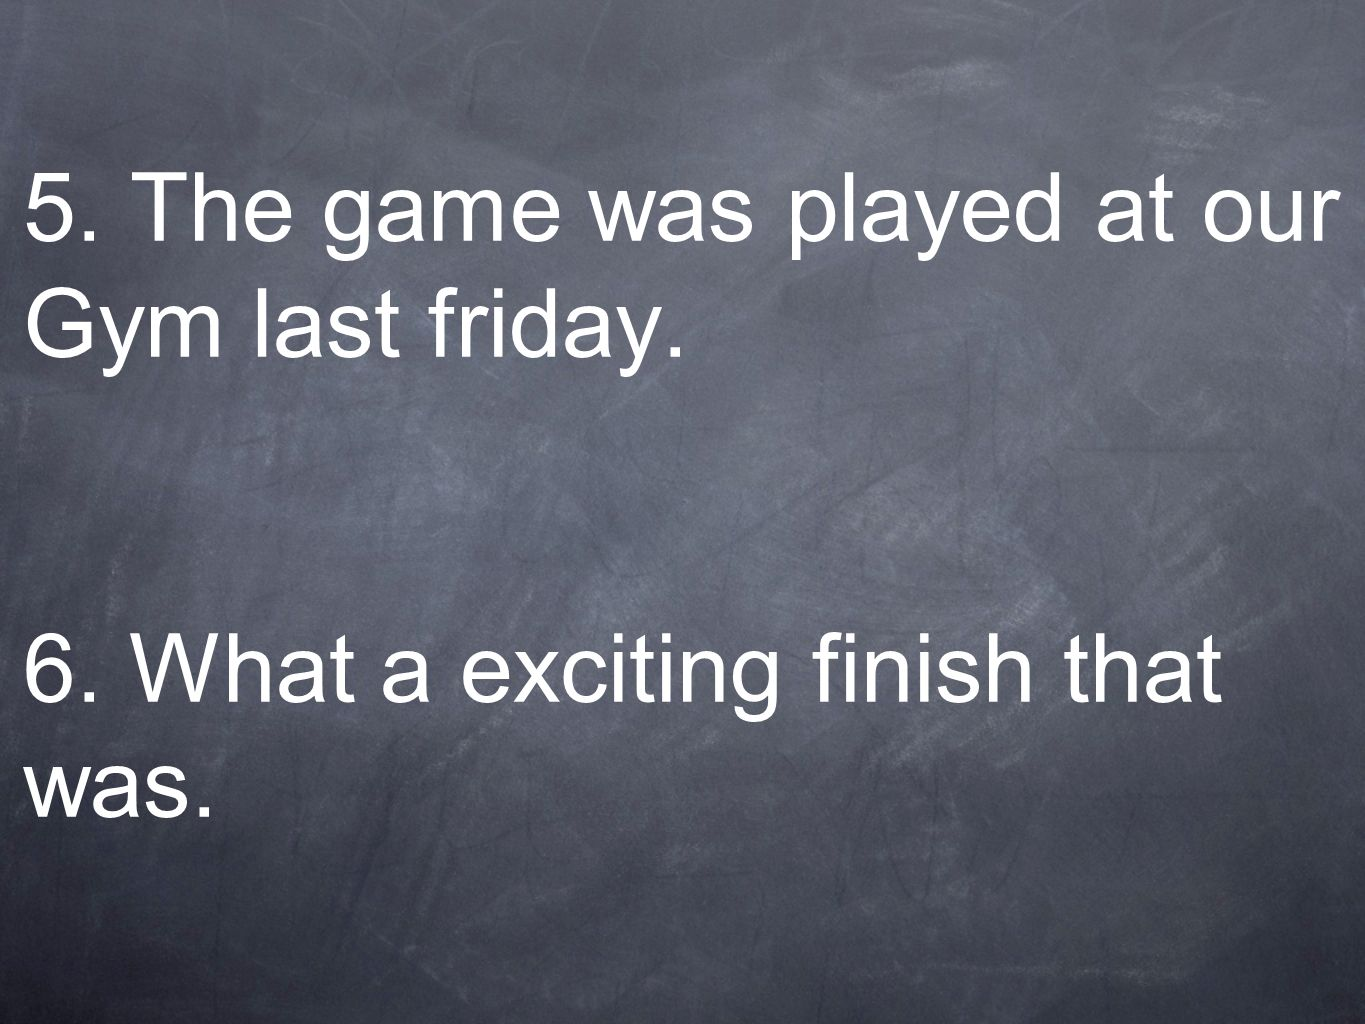 5. The game was played at our Gym last friday. 6. What a exciting finish that was.